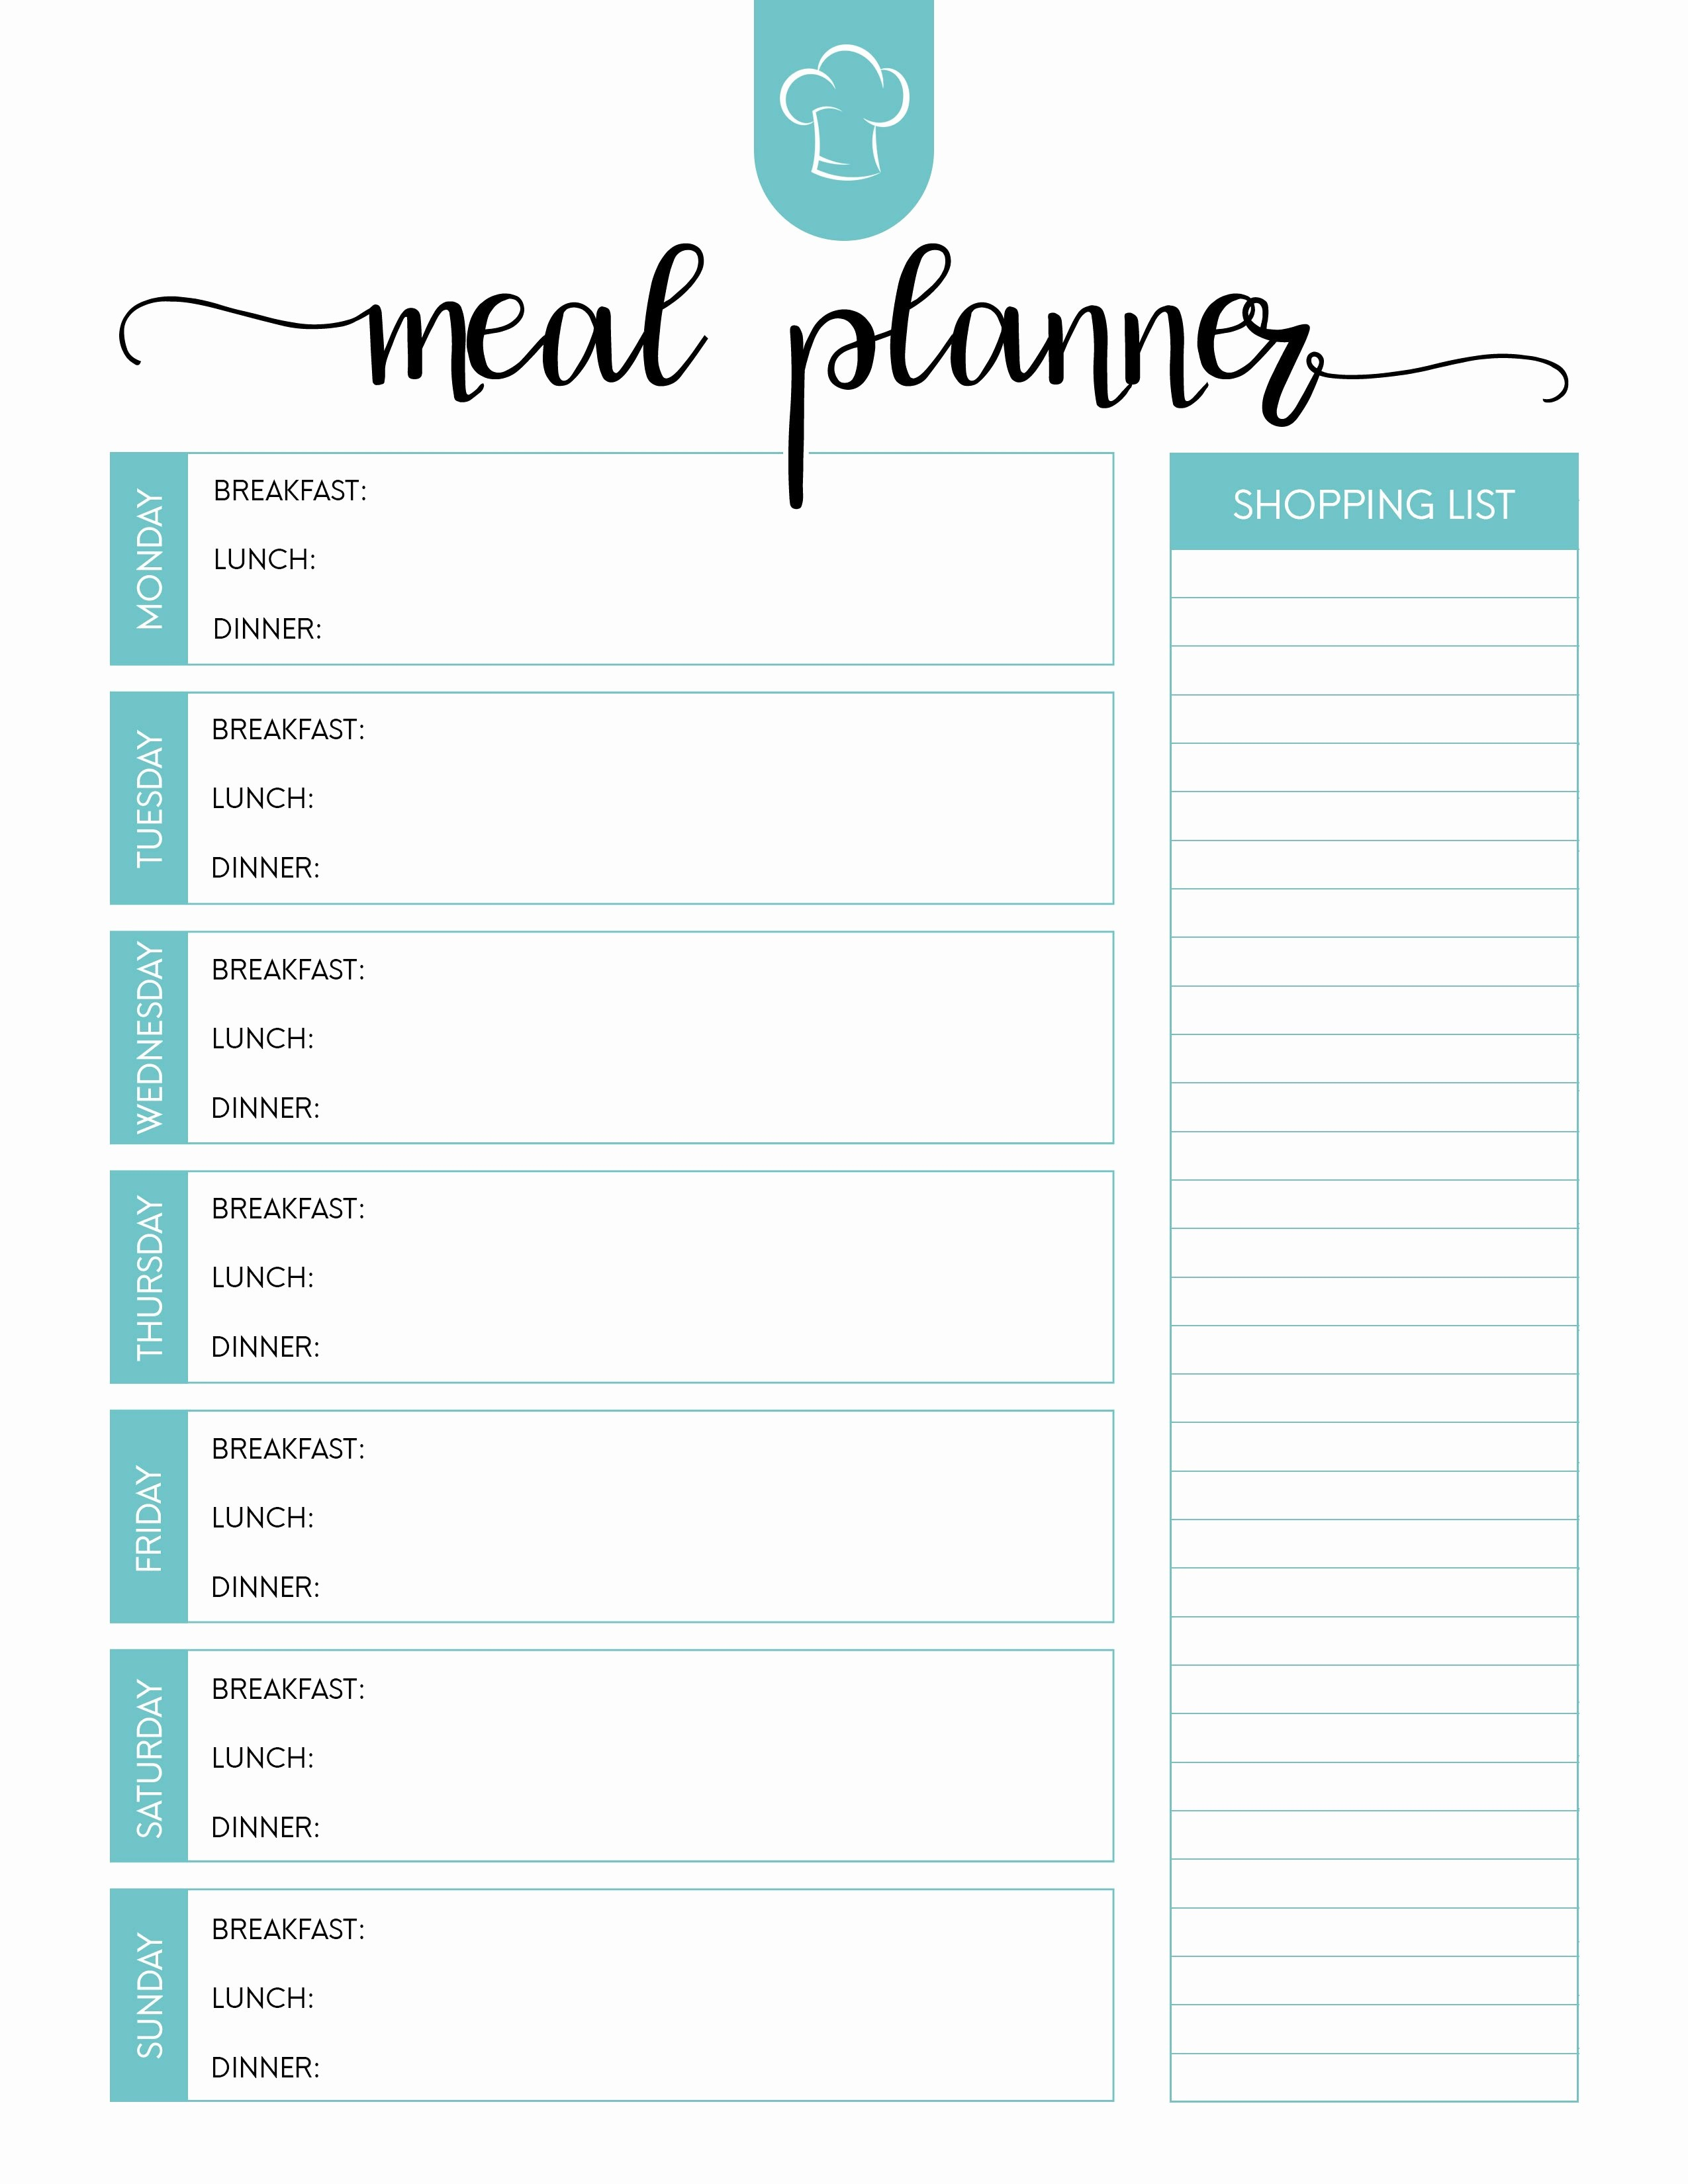 Weekly Meal Planner Template Pdf Fresh Printable Meal Planning Template Dinner Planner Blank Plan